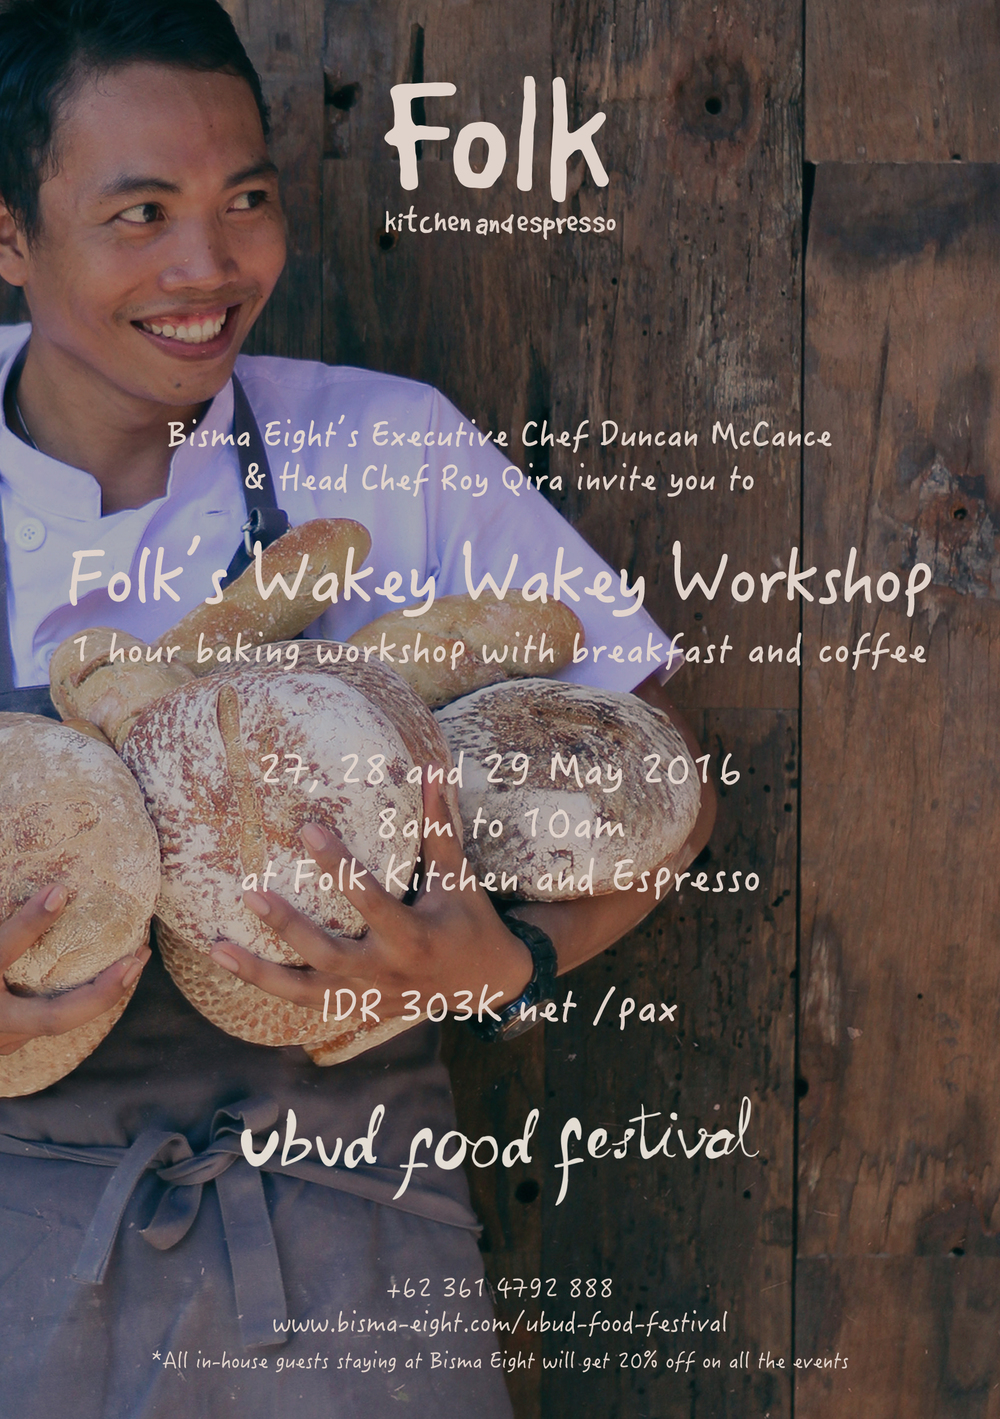 FOLK'S WAKEY WAKEY WORKSHOP!